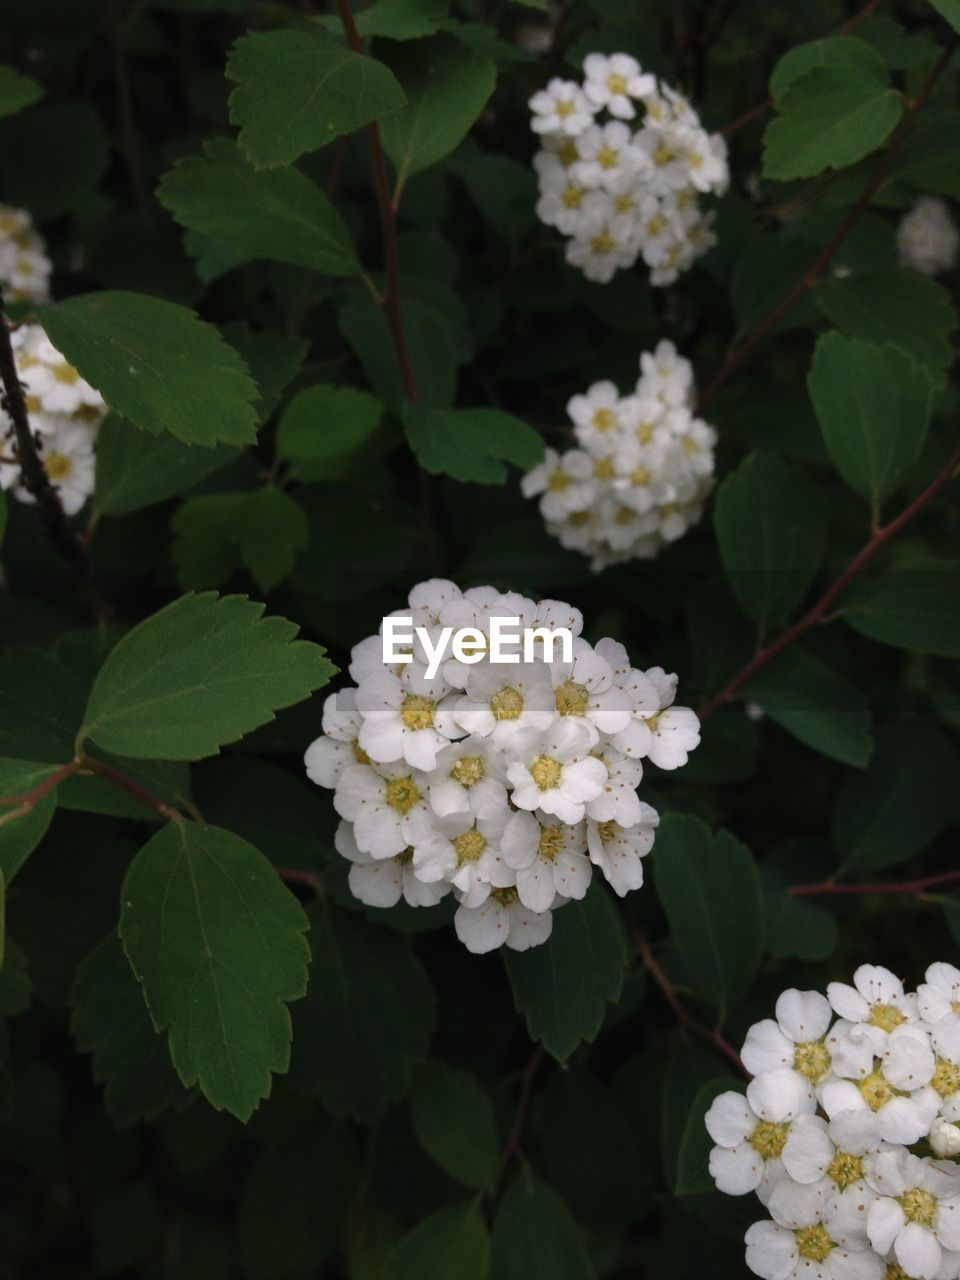 flower, leaf, growth, white color, plant, freshness, green color, petal, nature, beauty in nature, blooming, fragility, lantana camara, flower head, day, no people, hydrangea, outdoors, close-up